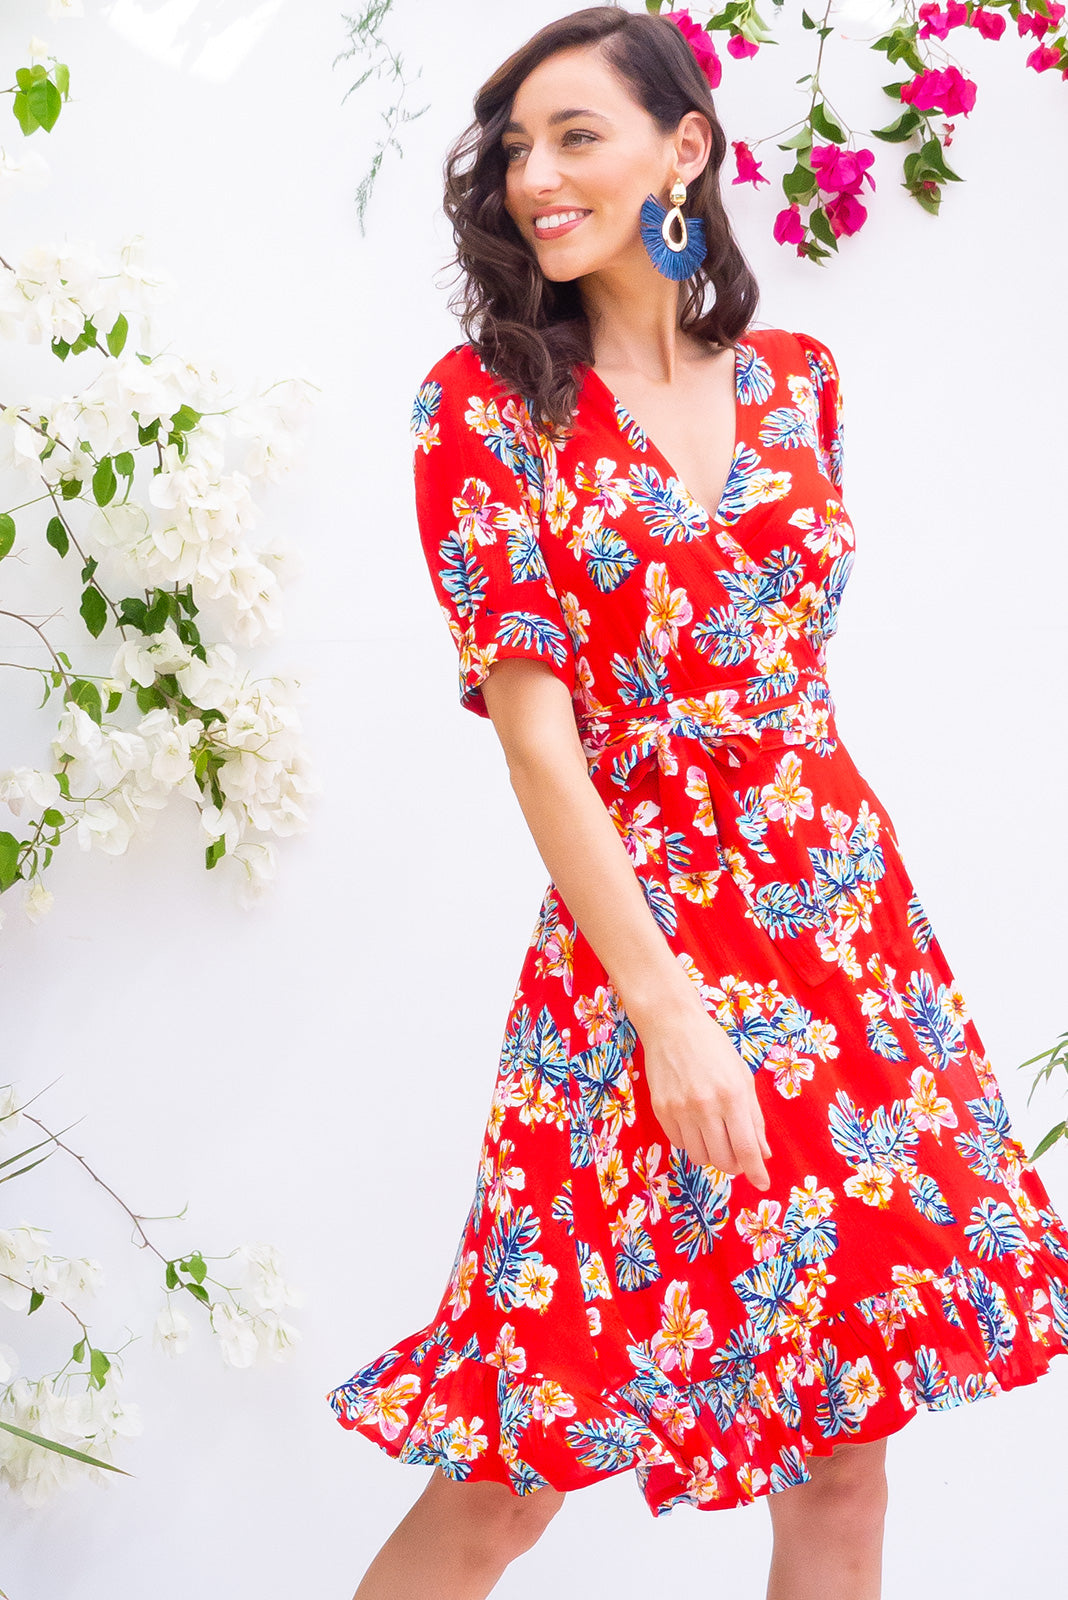 Antigua Red Spirit Maxi Wrap Dress in a 1940's inspired style with cuffed midi sleeves and a delicate hemline frill in a bright red print on crinkle woven rayon